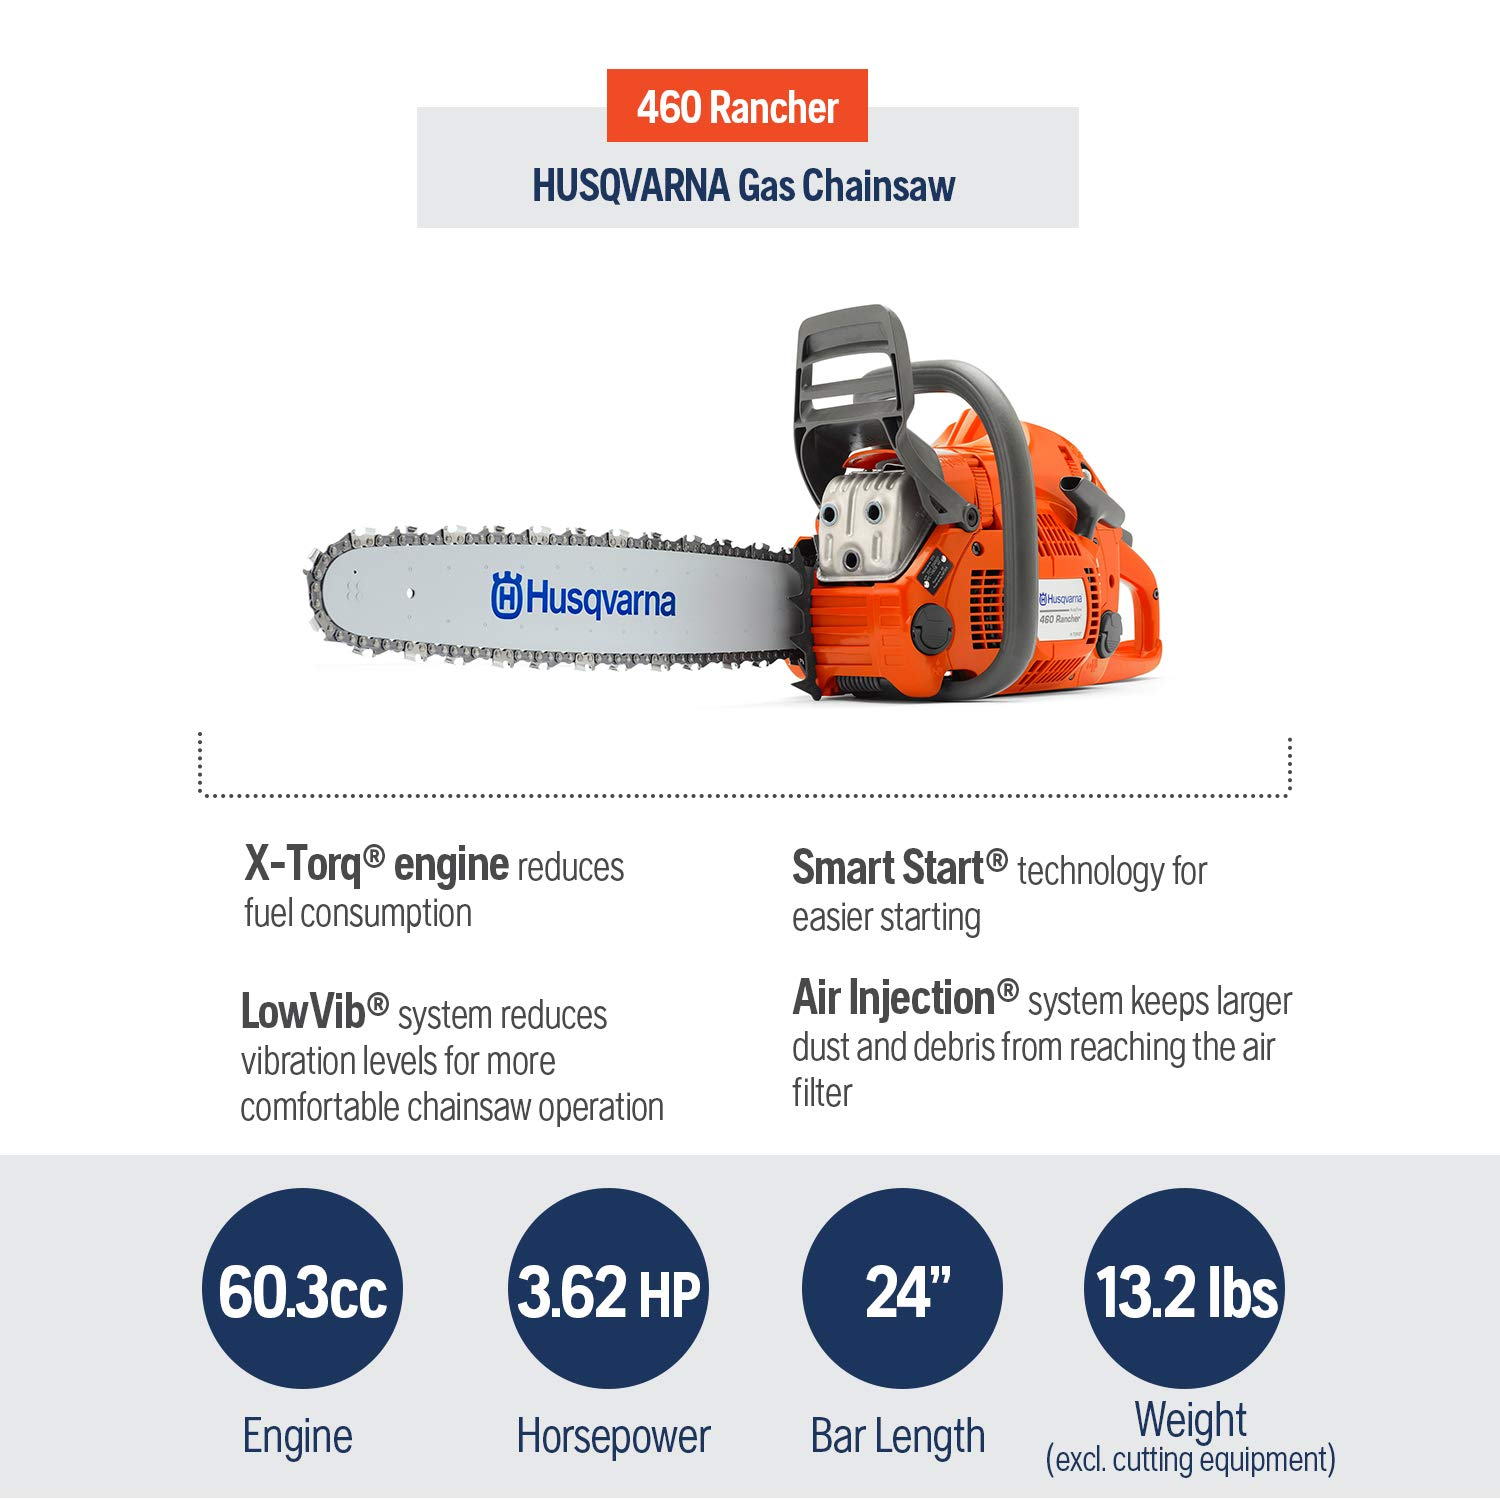 Husqvarna 460 Rancher Chainsaws product image 2